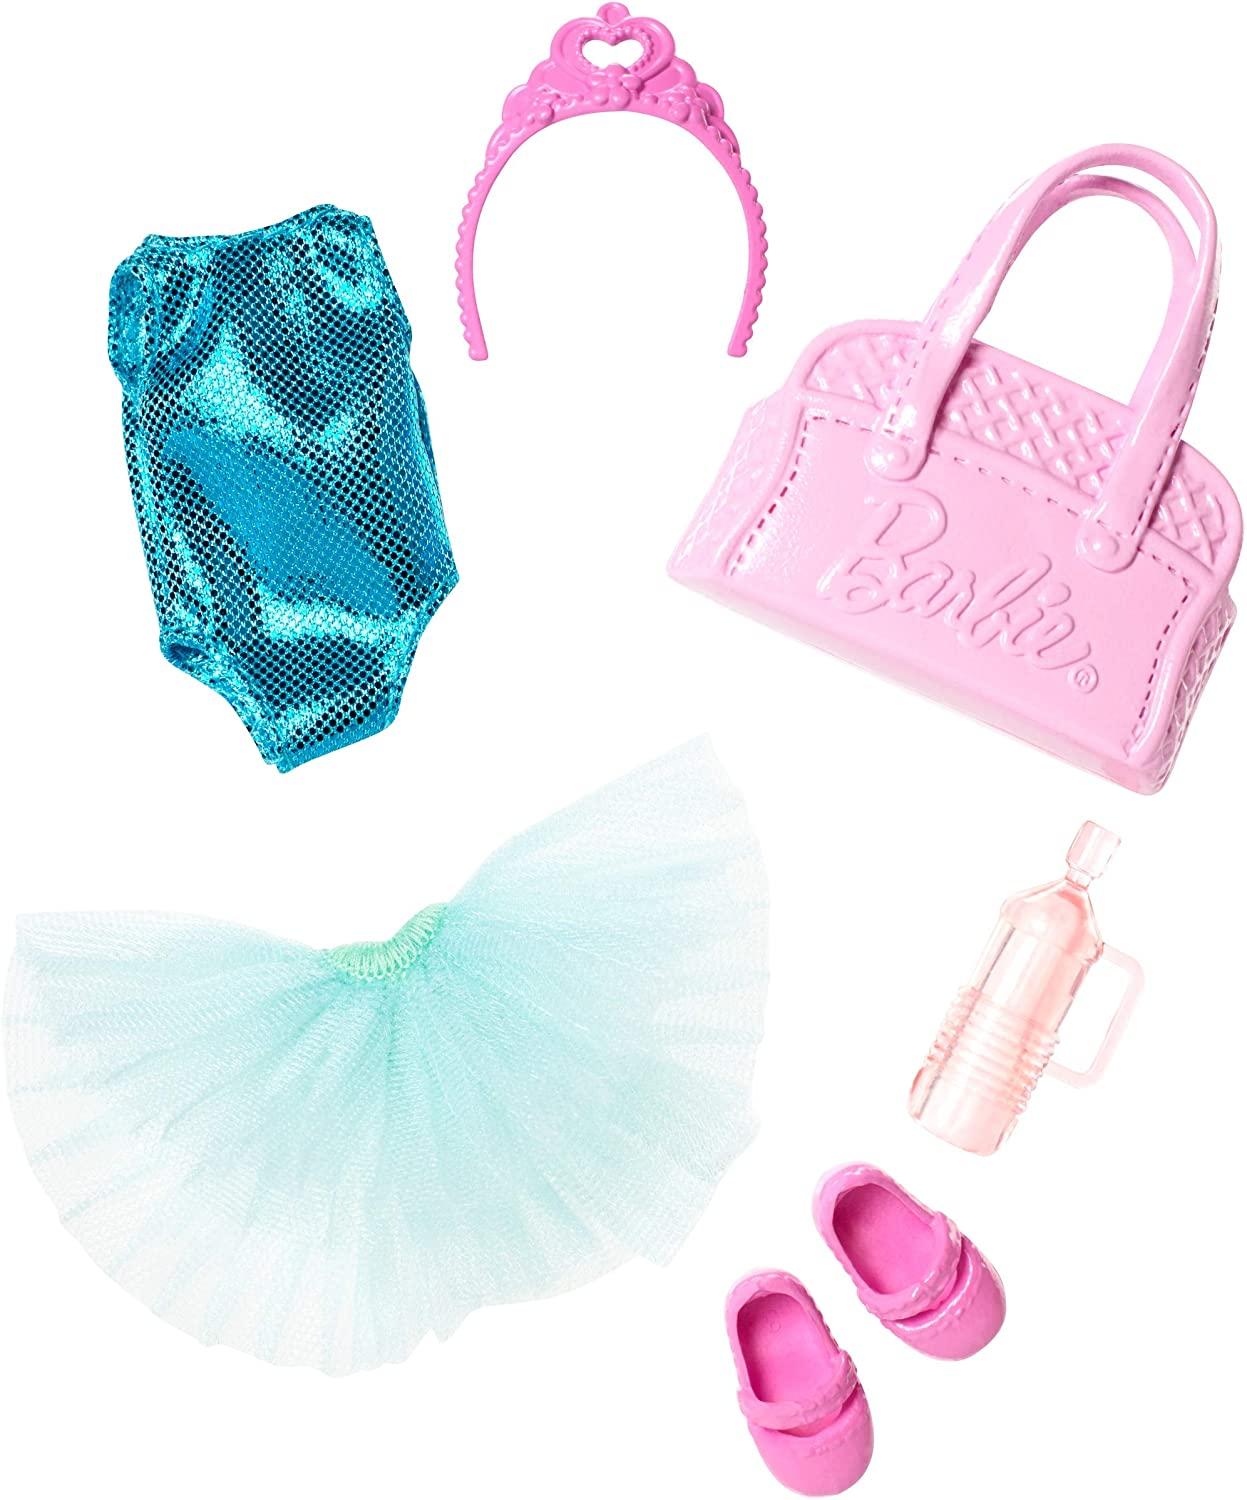 Barbie Club Chelsea Accessory Pack, Ballet-Themed Clothing and Accessories for Small Dolls, 6 Pieces for 3 to 7 Year Olds Include Tutu and Dance Bag